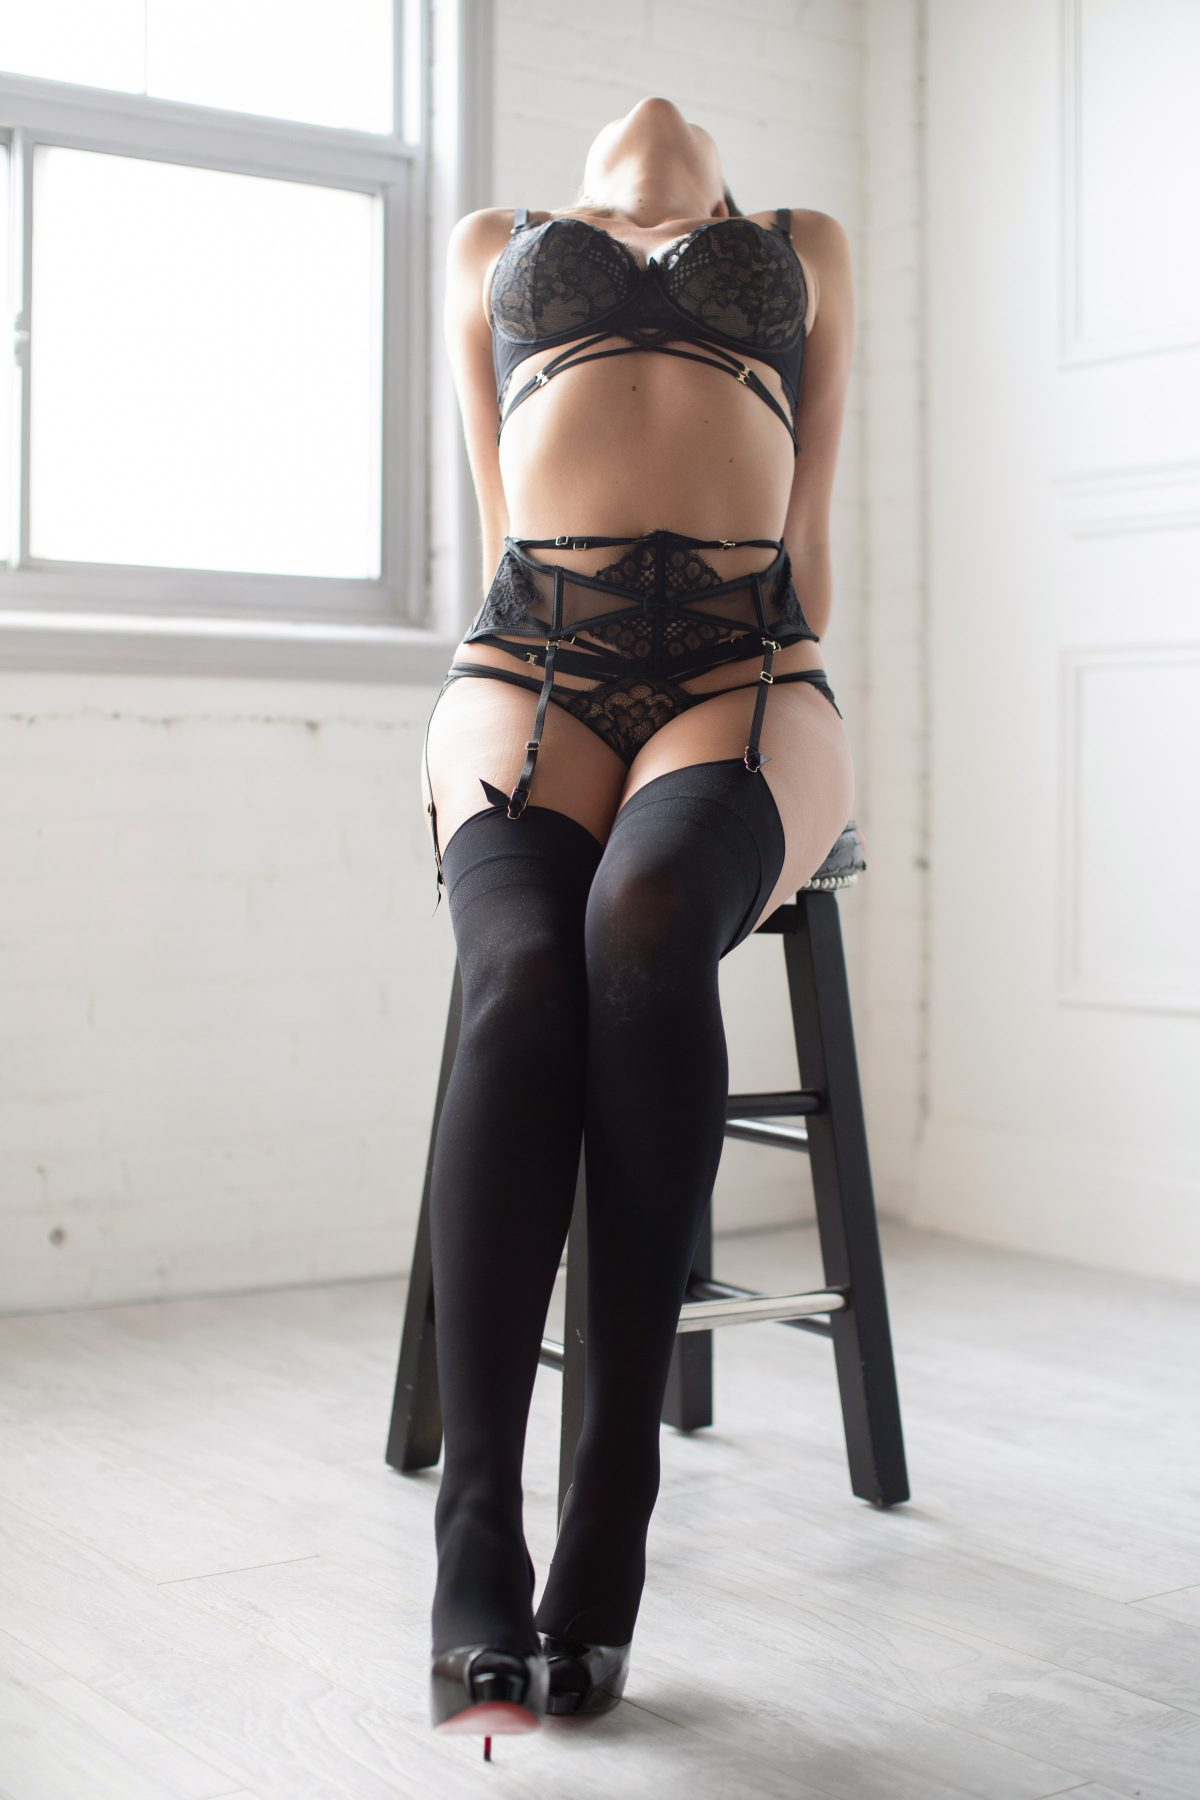 Toronto escorts companion upscale Jocelyn Interests Duo Couple-friendly Non-smoking Age Mature Figure Slender Tall Breasts Natural Hair Blonde Ethnicity European Tattoos Small Arrival New Photos